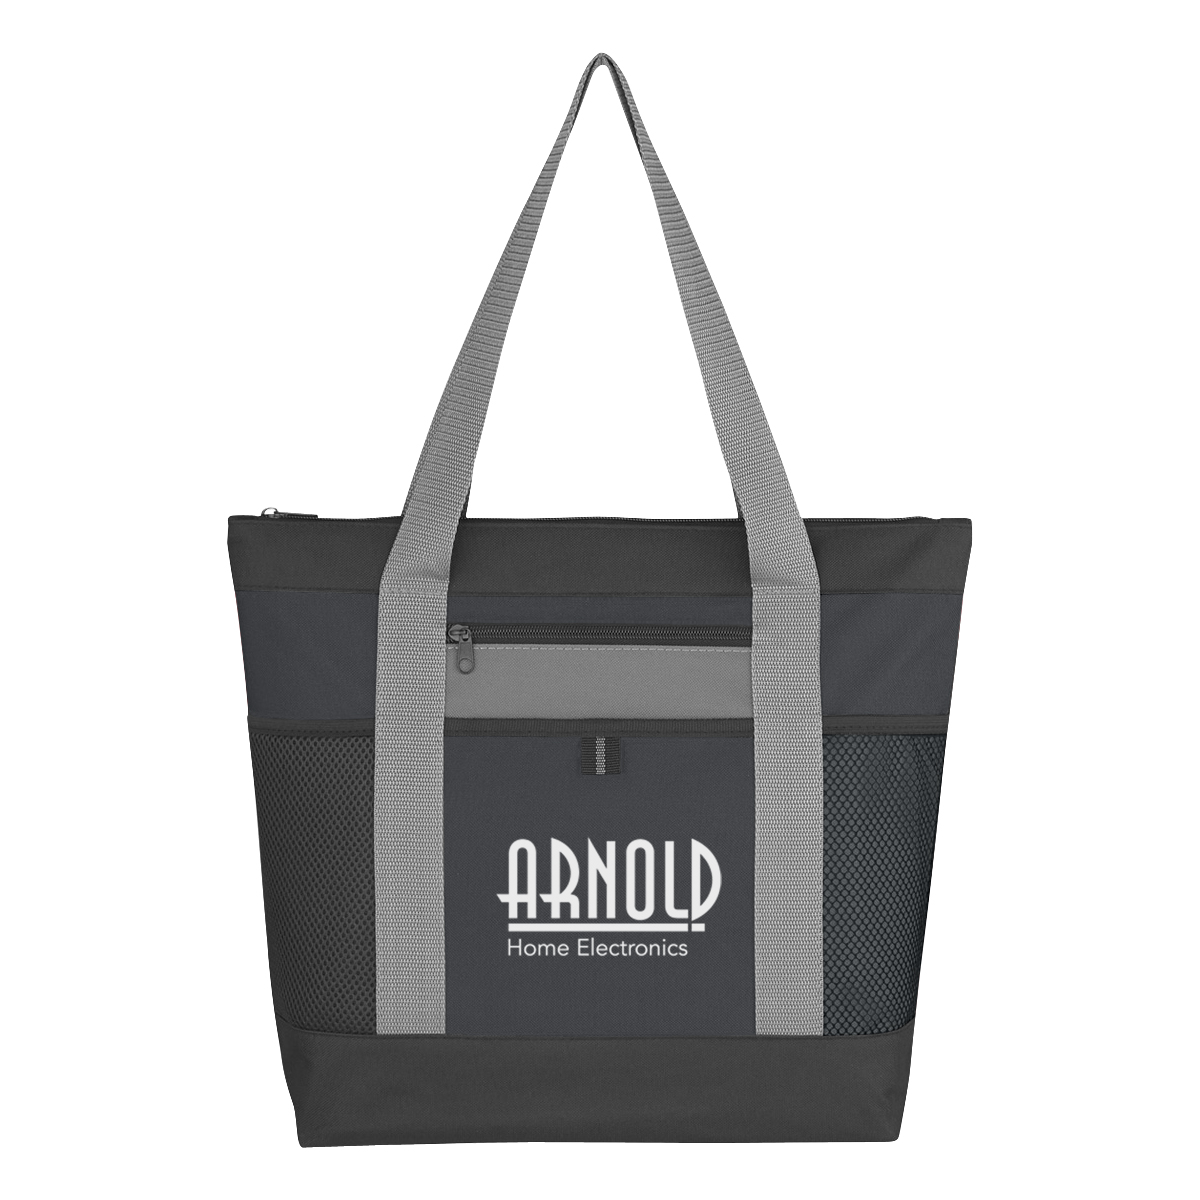 534272193-816 - Tri-Color Tote Bag - thumbnail